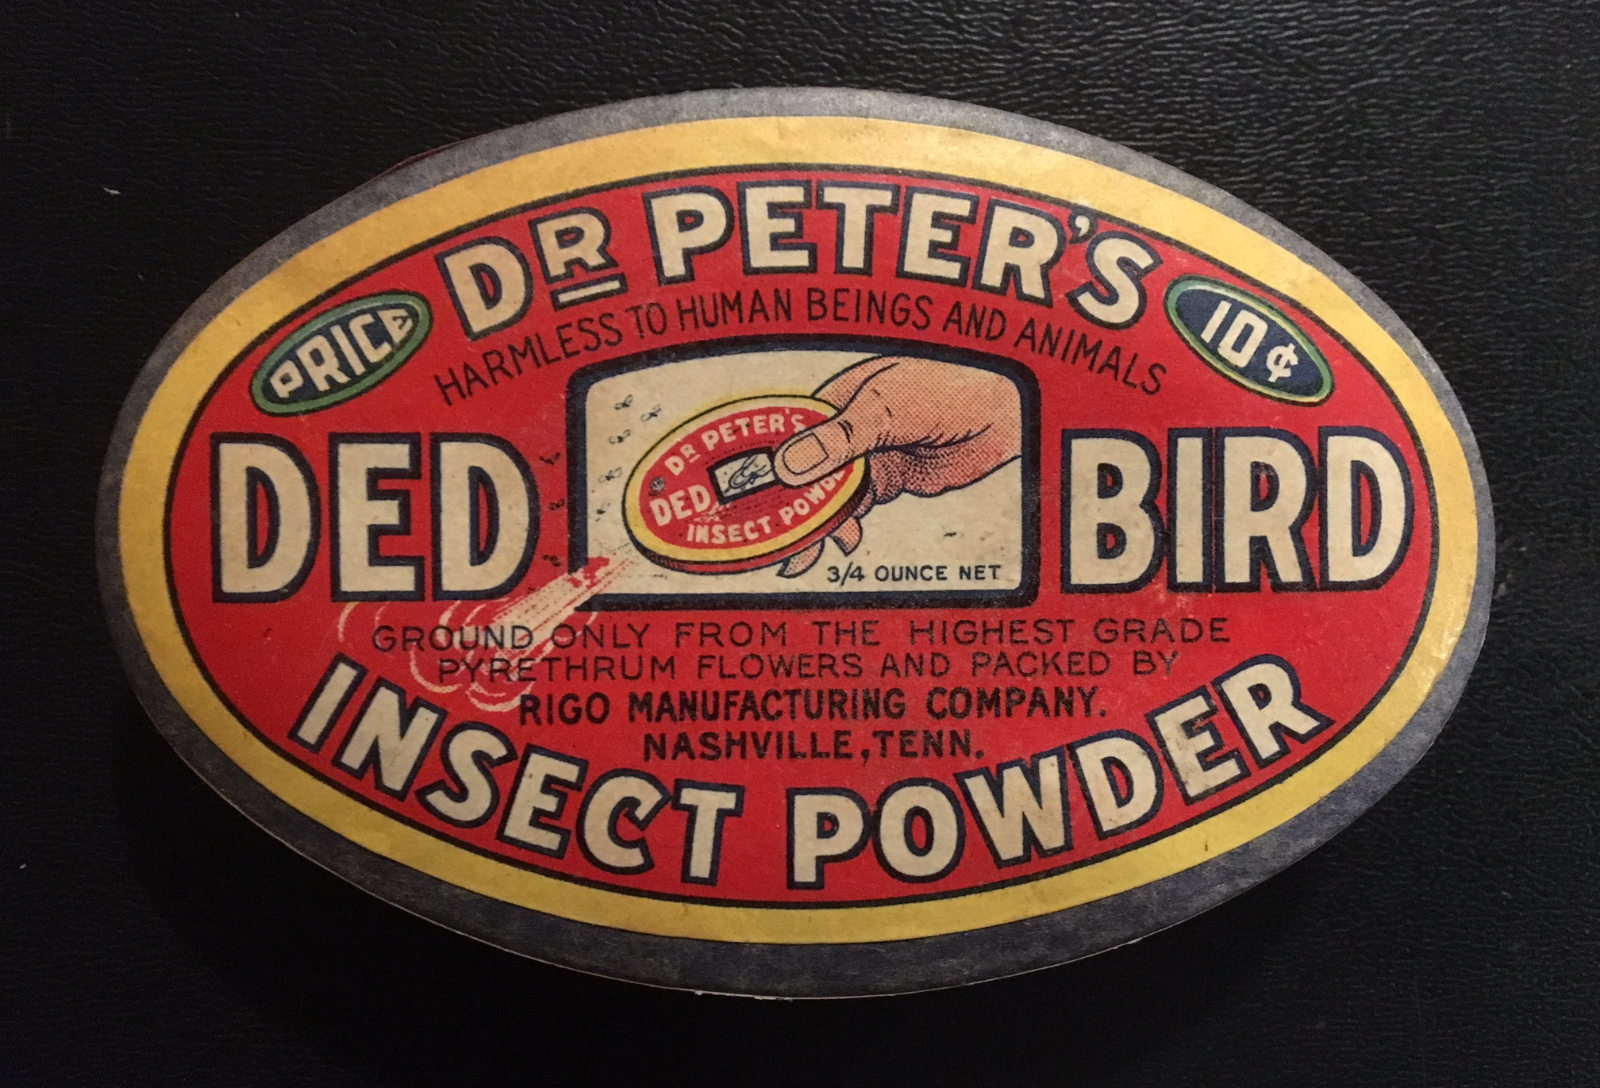 """1930/'s Rare Dr Peters DED BIRD Insect Powder Box """"Still Full"""" Superb Graphics!!"""